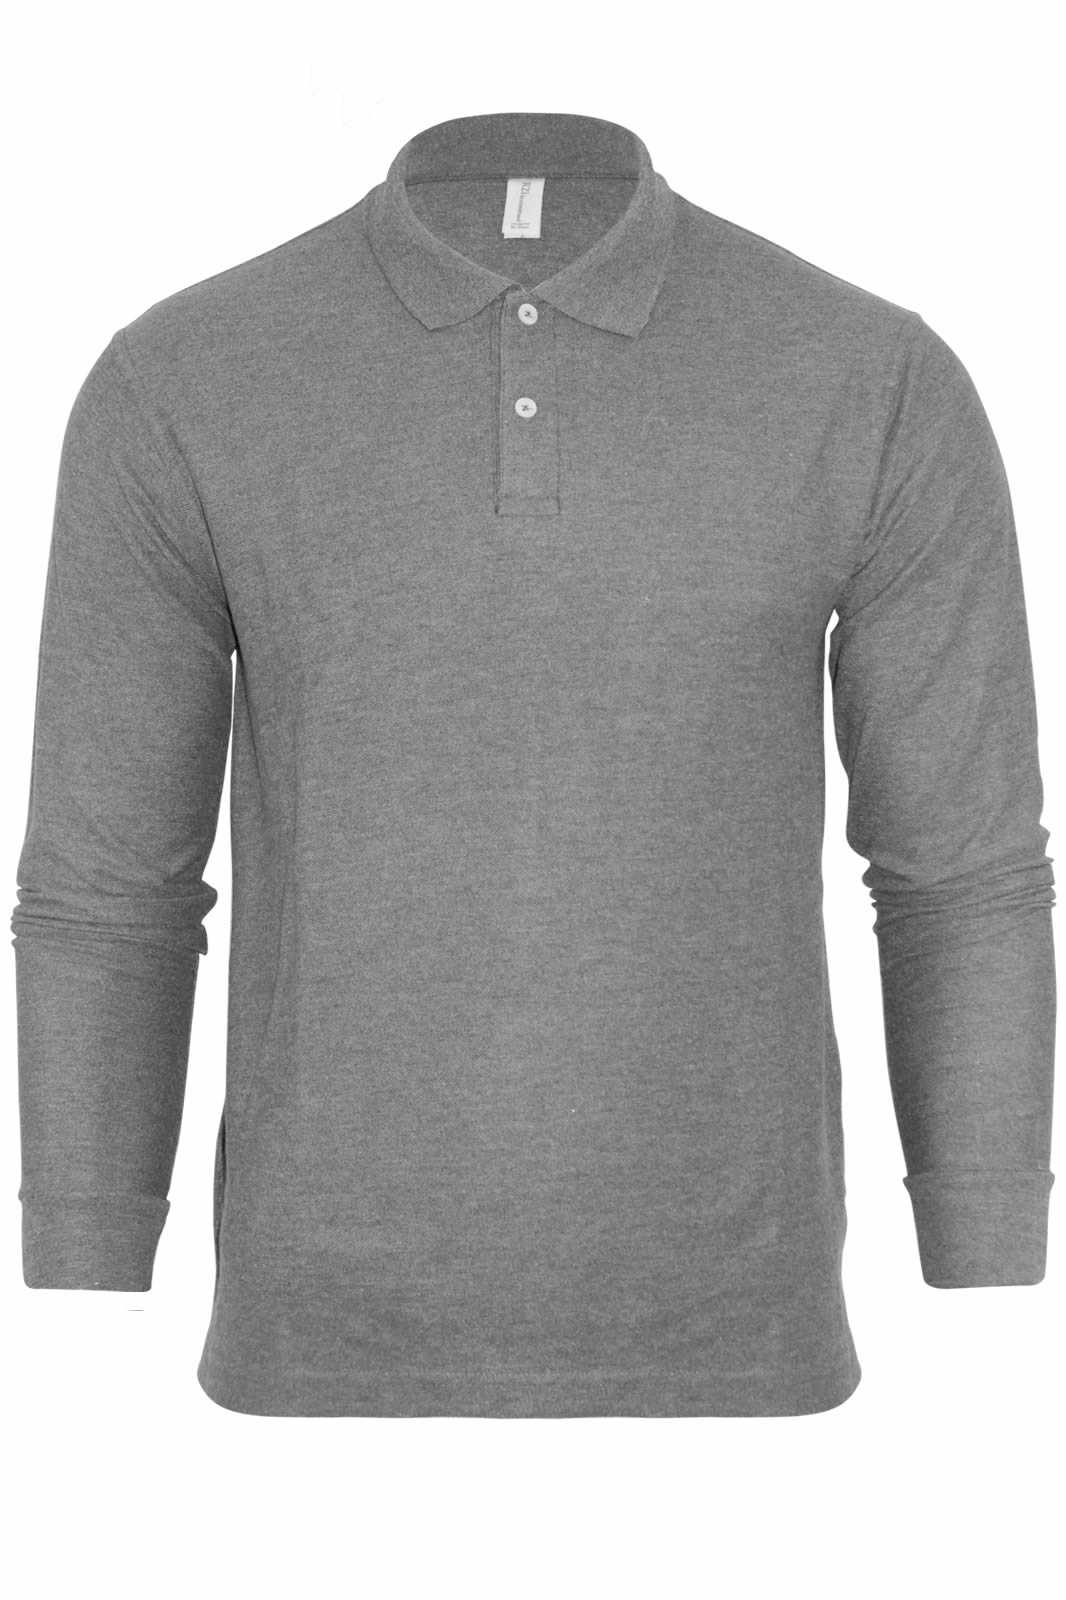 88878779267 Mens Plain Long Sleeve Collared Knitted Polo Shirt NEW Sizes M-XXL ...